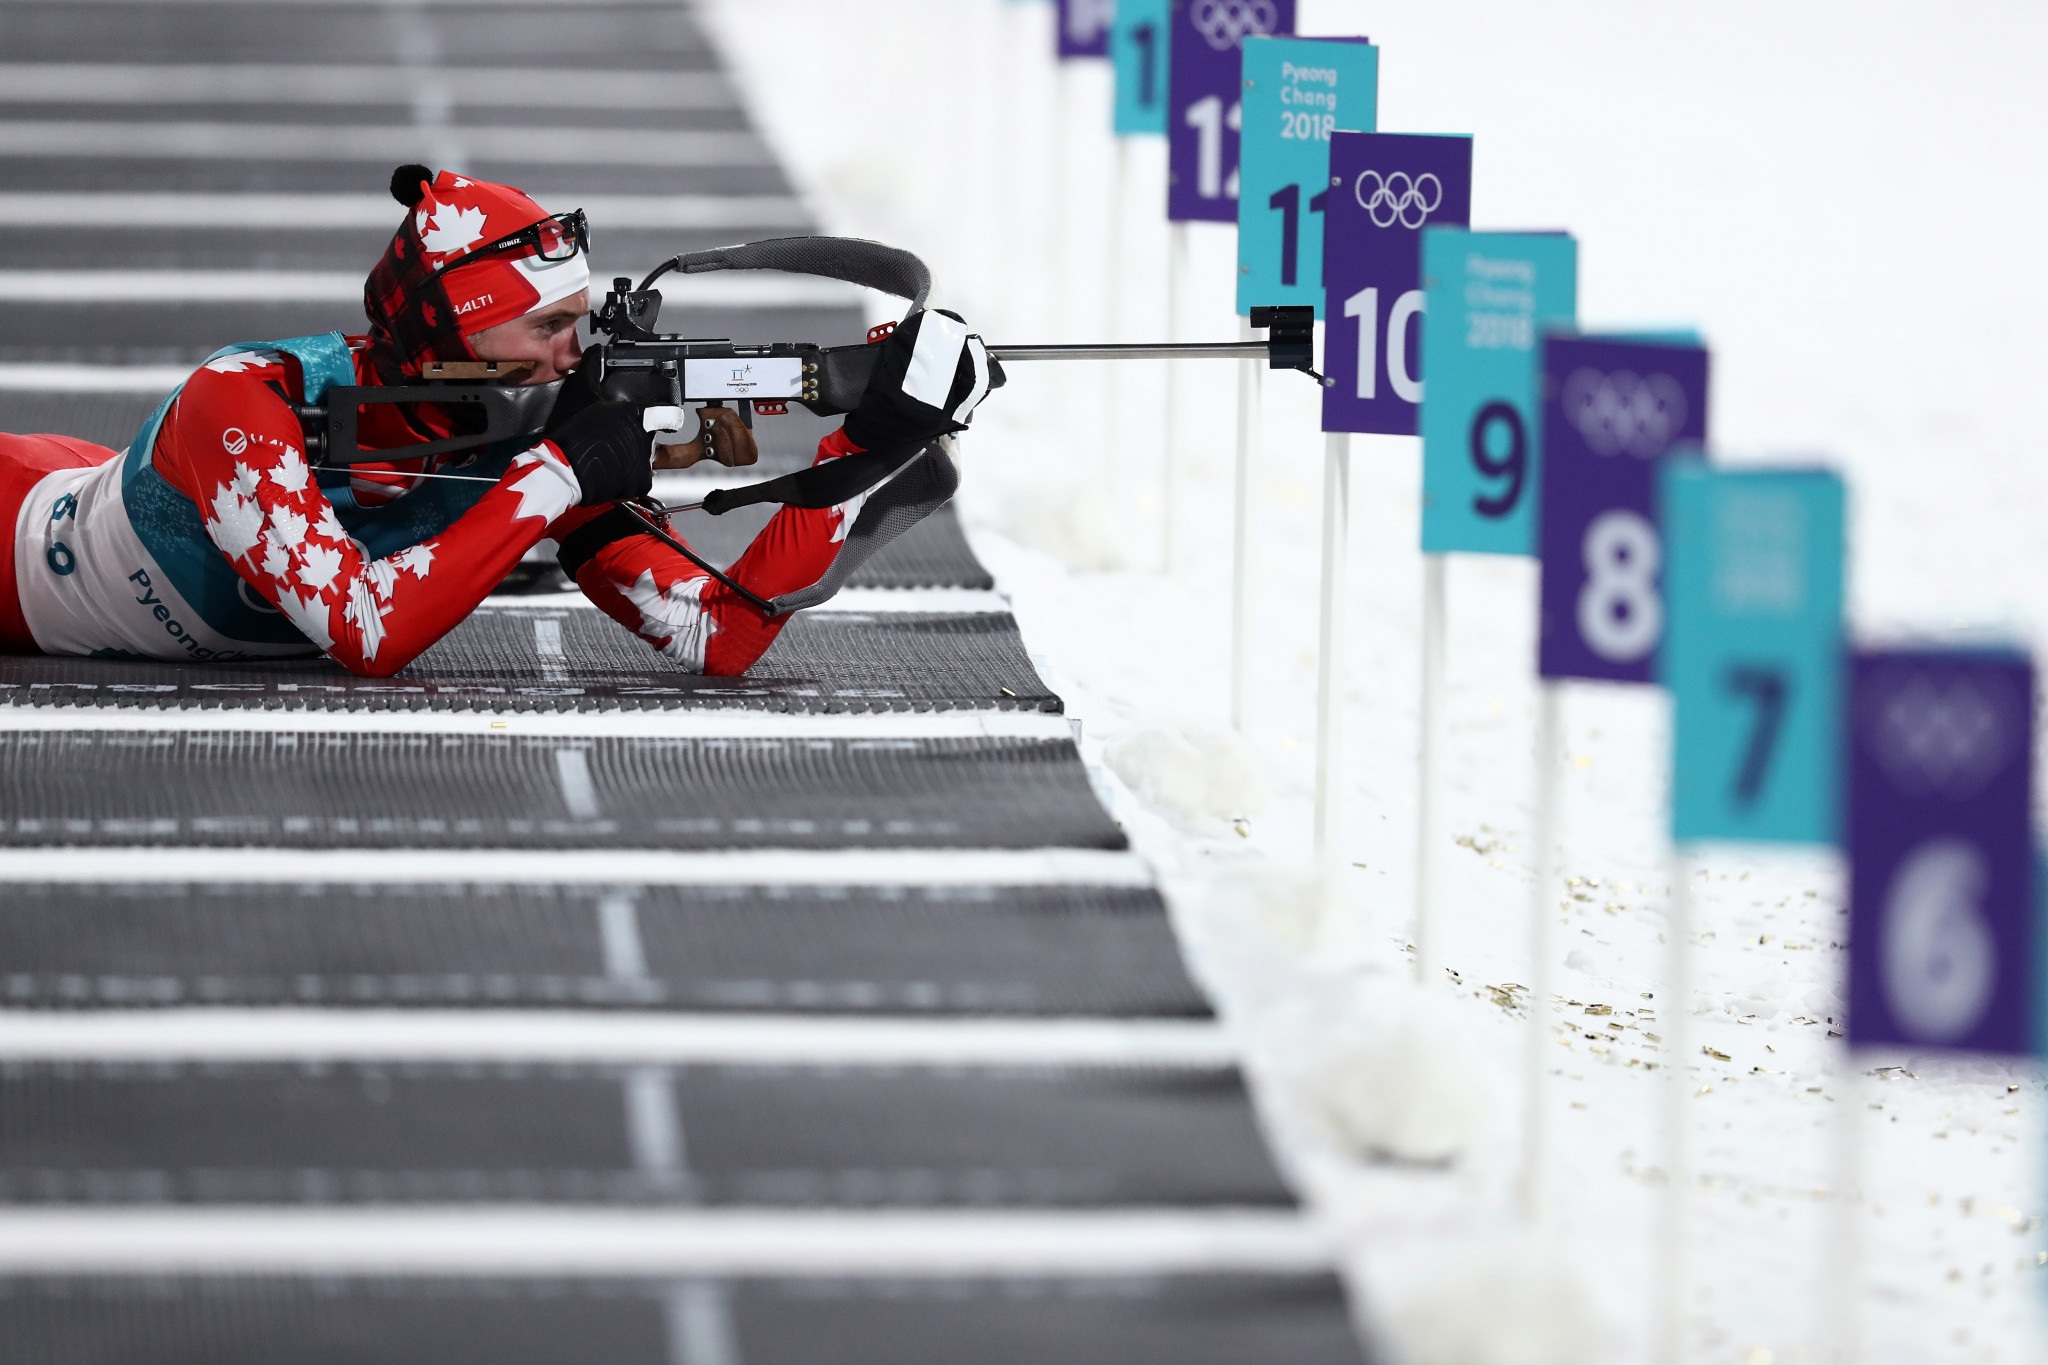 Biathlon Canada promised they will seek to build on Matthias Ahrens' legacy at upcoming Winter Olympic Games ©Getty Images